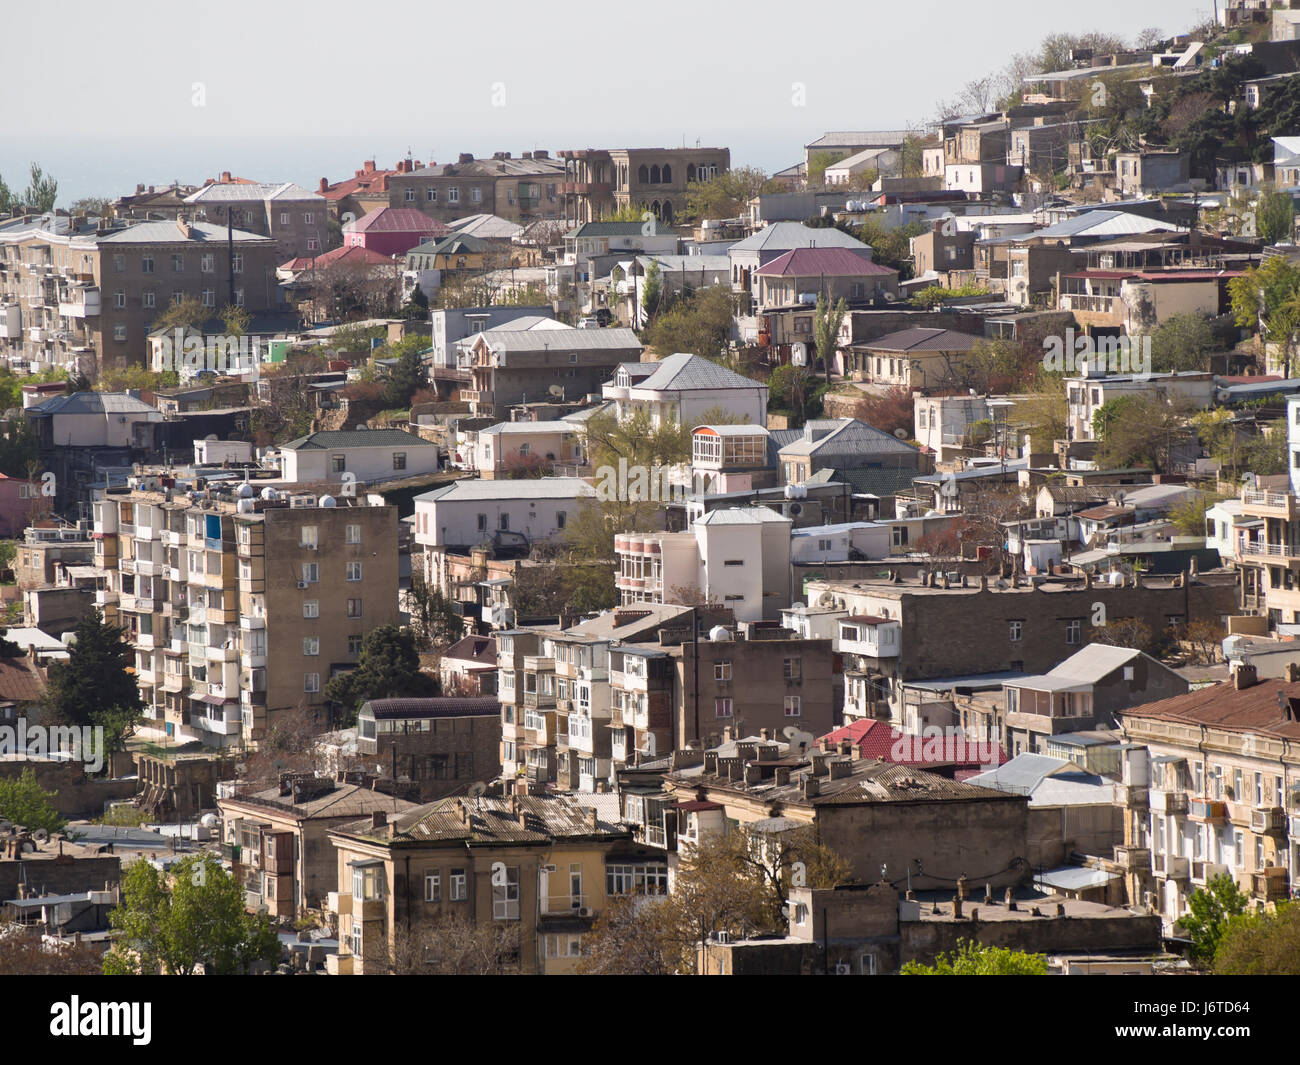 Baku, the capital city of Azerbaijan, on the shore of the Caspian sea, view of the residential district Bayil from - Stock Image